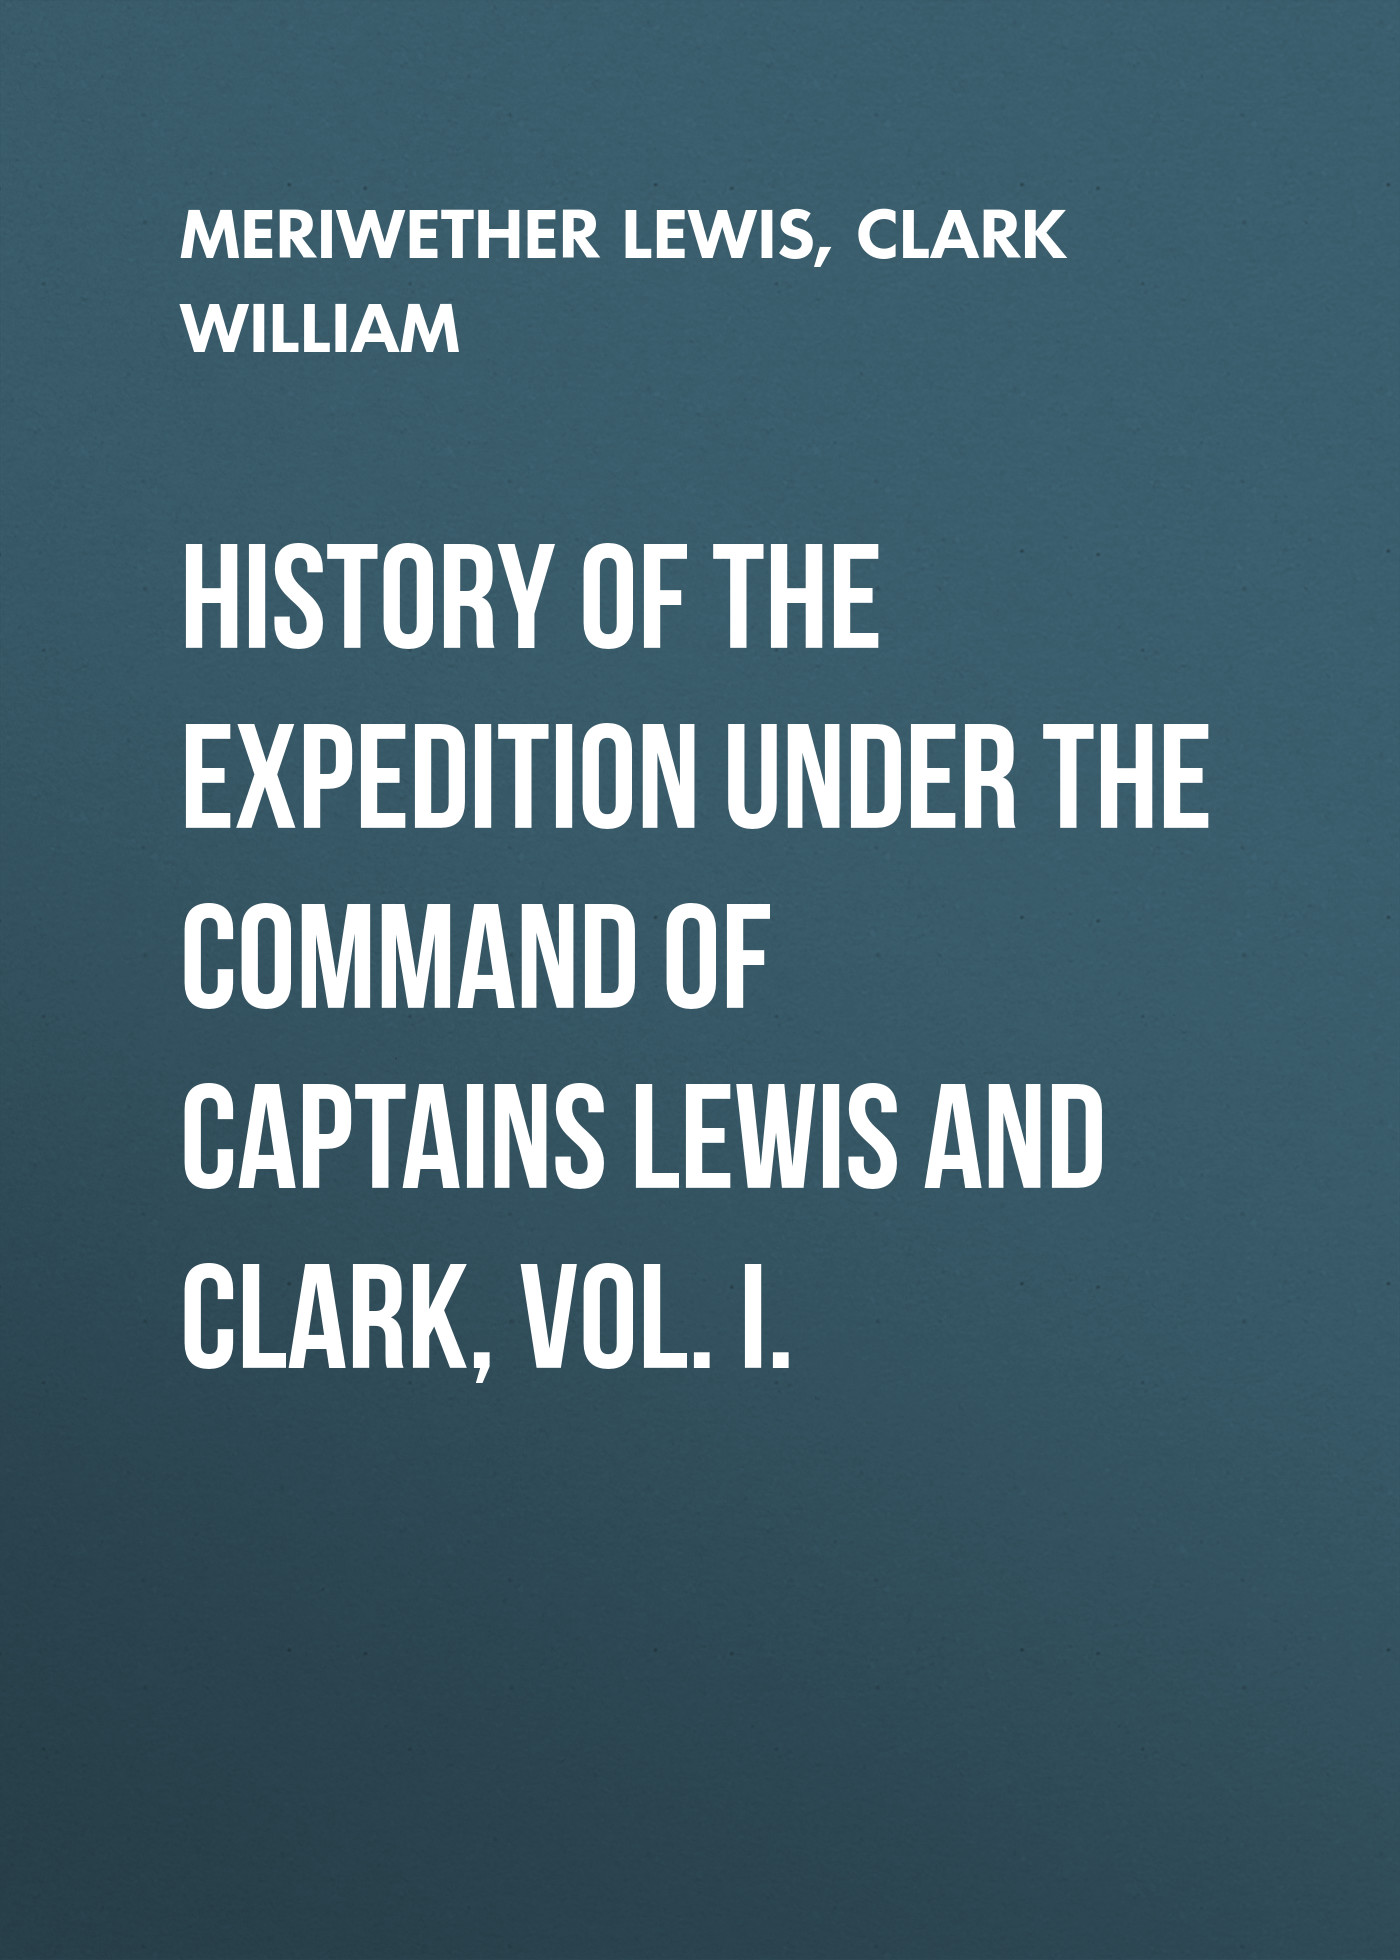 Clark William History of the Expedition under the Command of Captains Lewis and Clark, Vol. I.